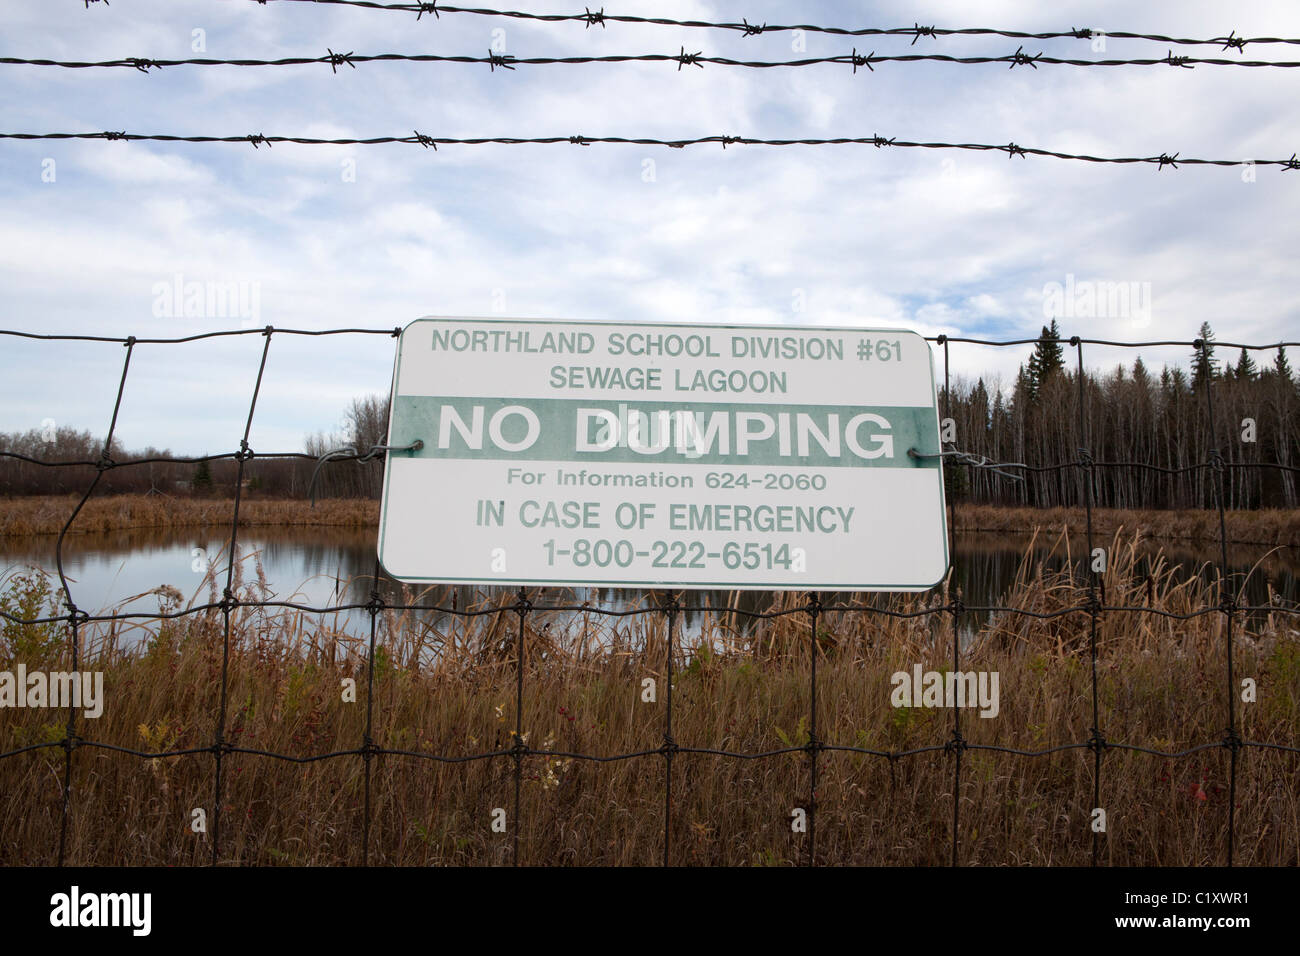 Warning sign on wire fence in front of sewage lagoon, Peace River, Alberta, Canada - Stock Image